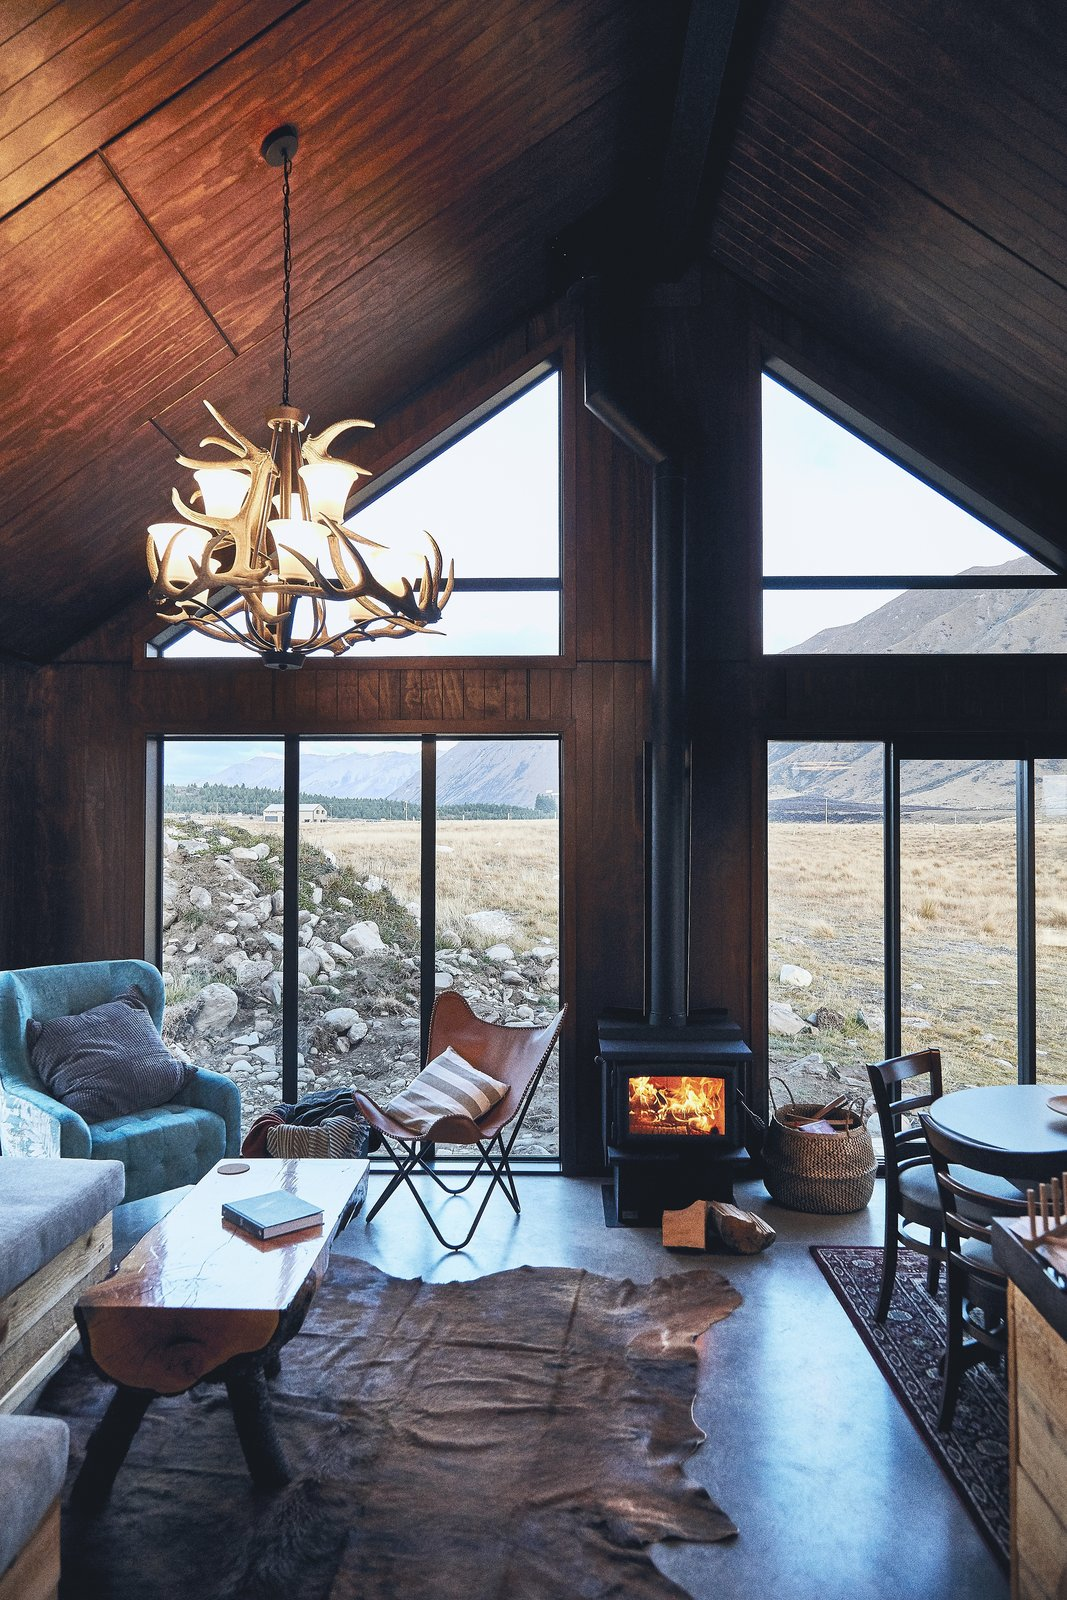 """Living Room, Chair, Sofa, Concrete Floor, Coffee Tables, Wood Burning Fireplace, Pendant Lighting, and Rug Floor """"With this cabin I wanted something that was robust, so you could enter after an outdoor activity, kick your boots off, start the fire and put some food on,"""" says Kenny. """"But at the same time have a feeling of space with the high ceilings, and some luxury and comforts of modern living like a nice shower and great water pressure.""""  Photo 2 of 9 in You Won't Want to Leave This Cozy Cabin in New Zealand"""